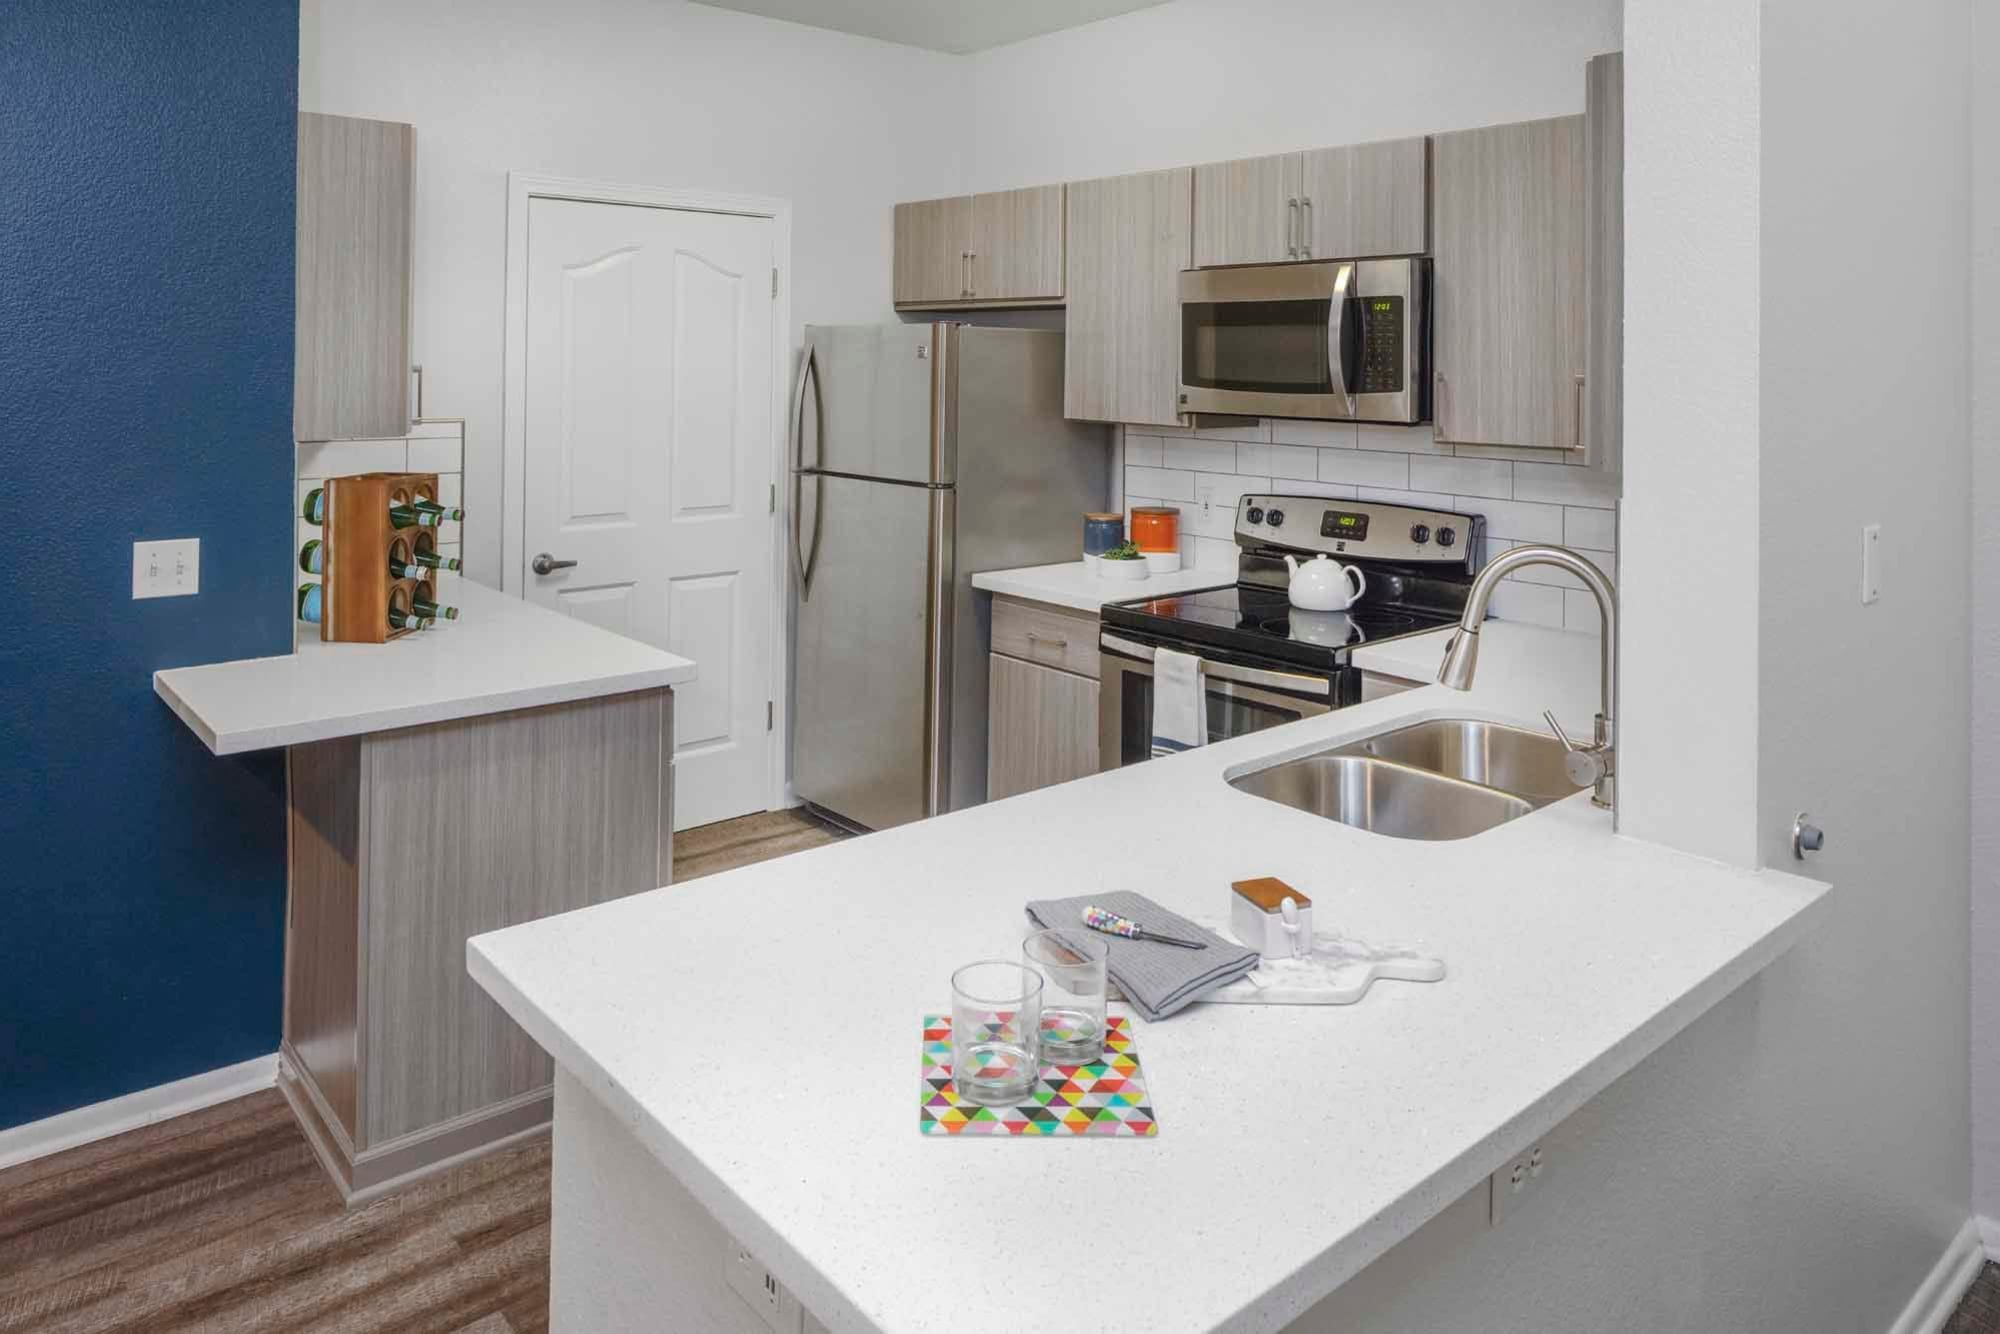 A large white kitchen with appliances at The Grove at Orenco Station in Hillsboro, Oregon